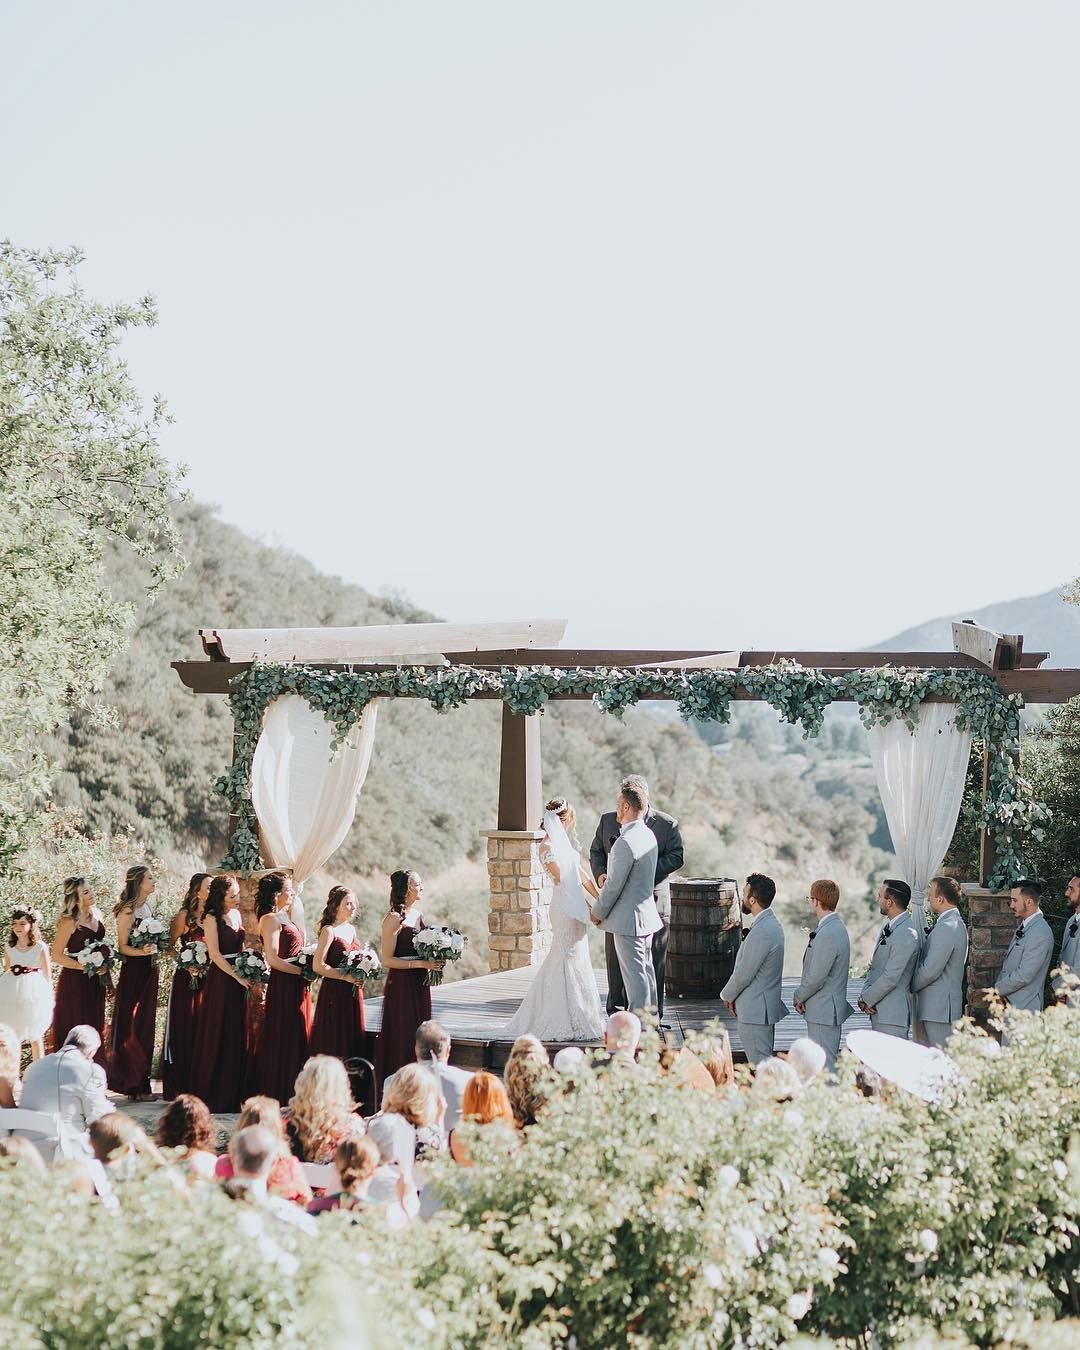 ceremony view goals at @serendipity_weddings 🙌🏻